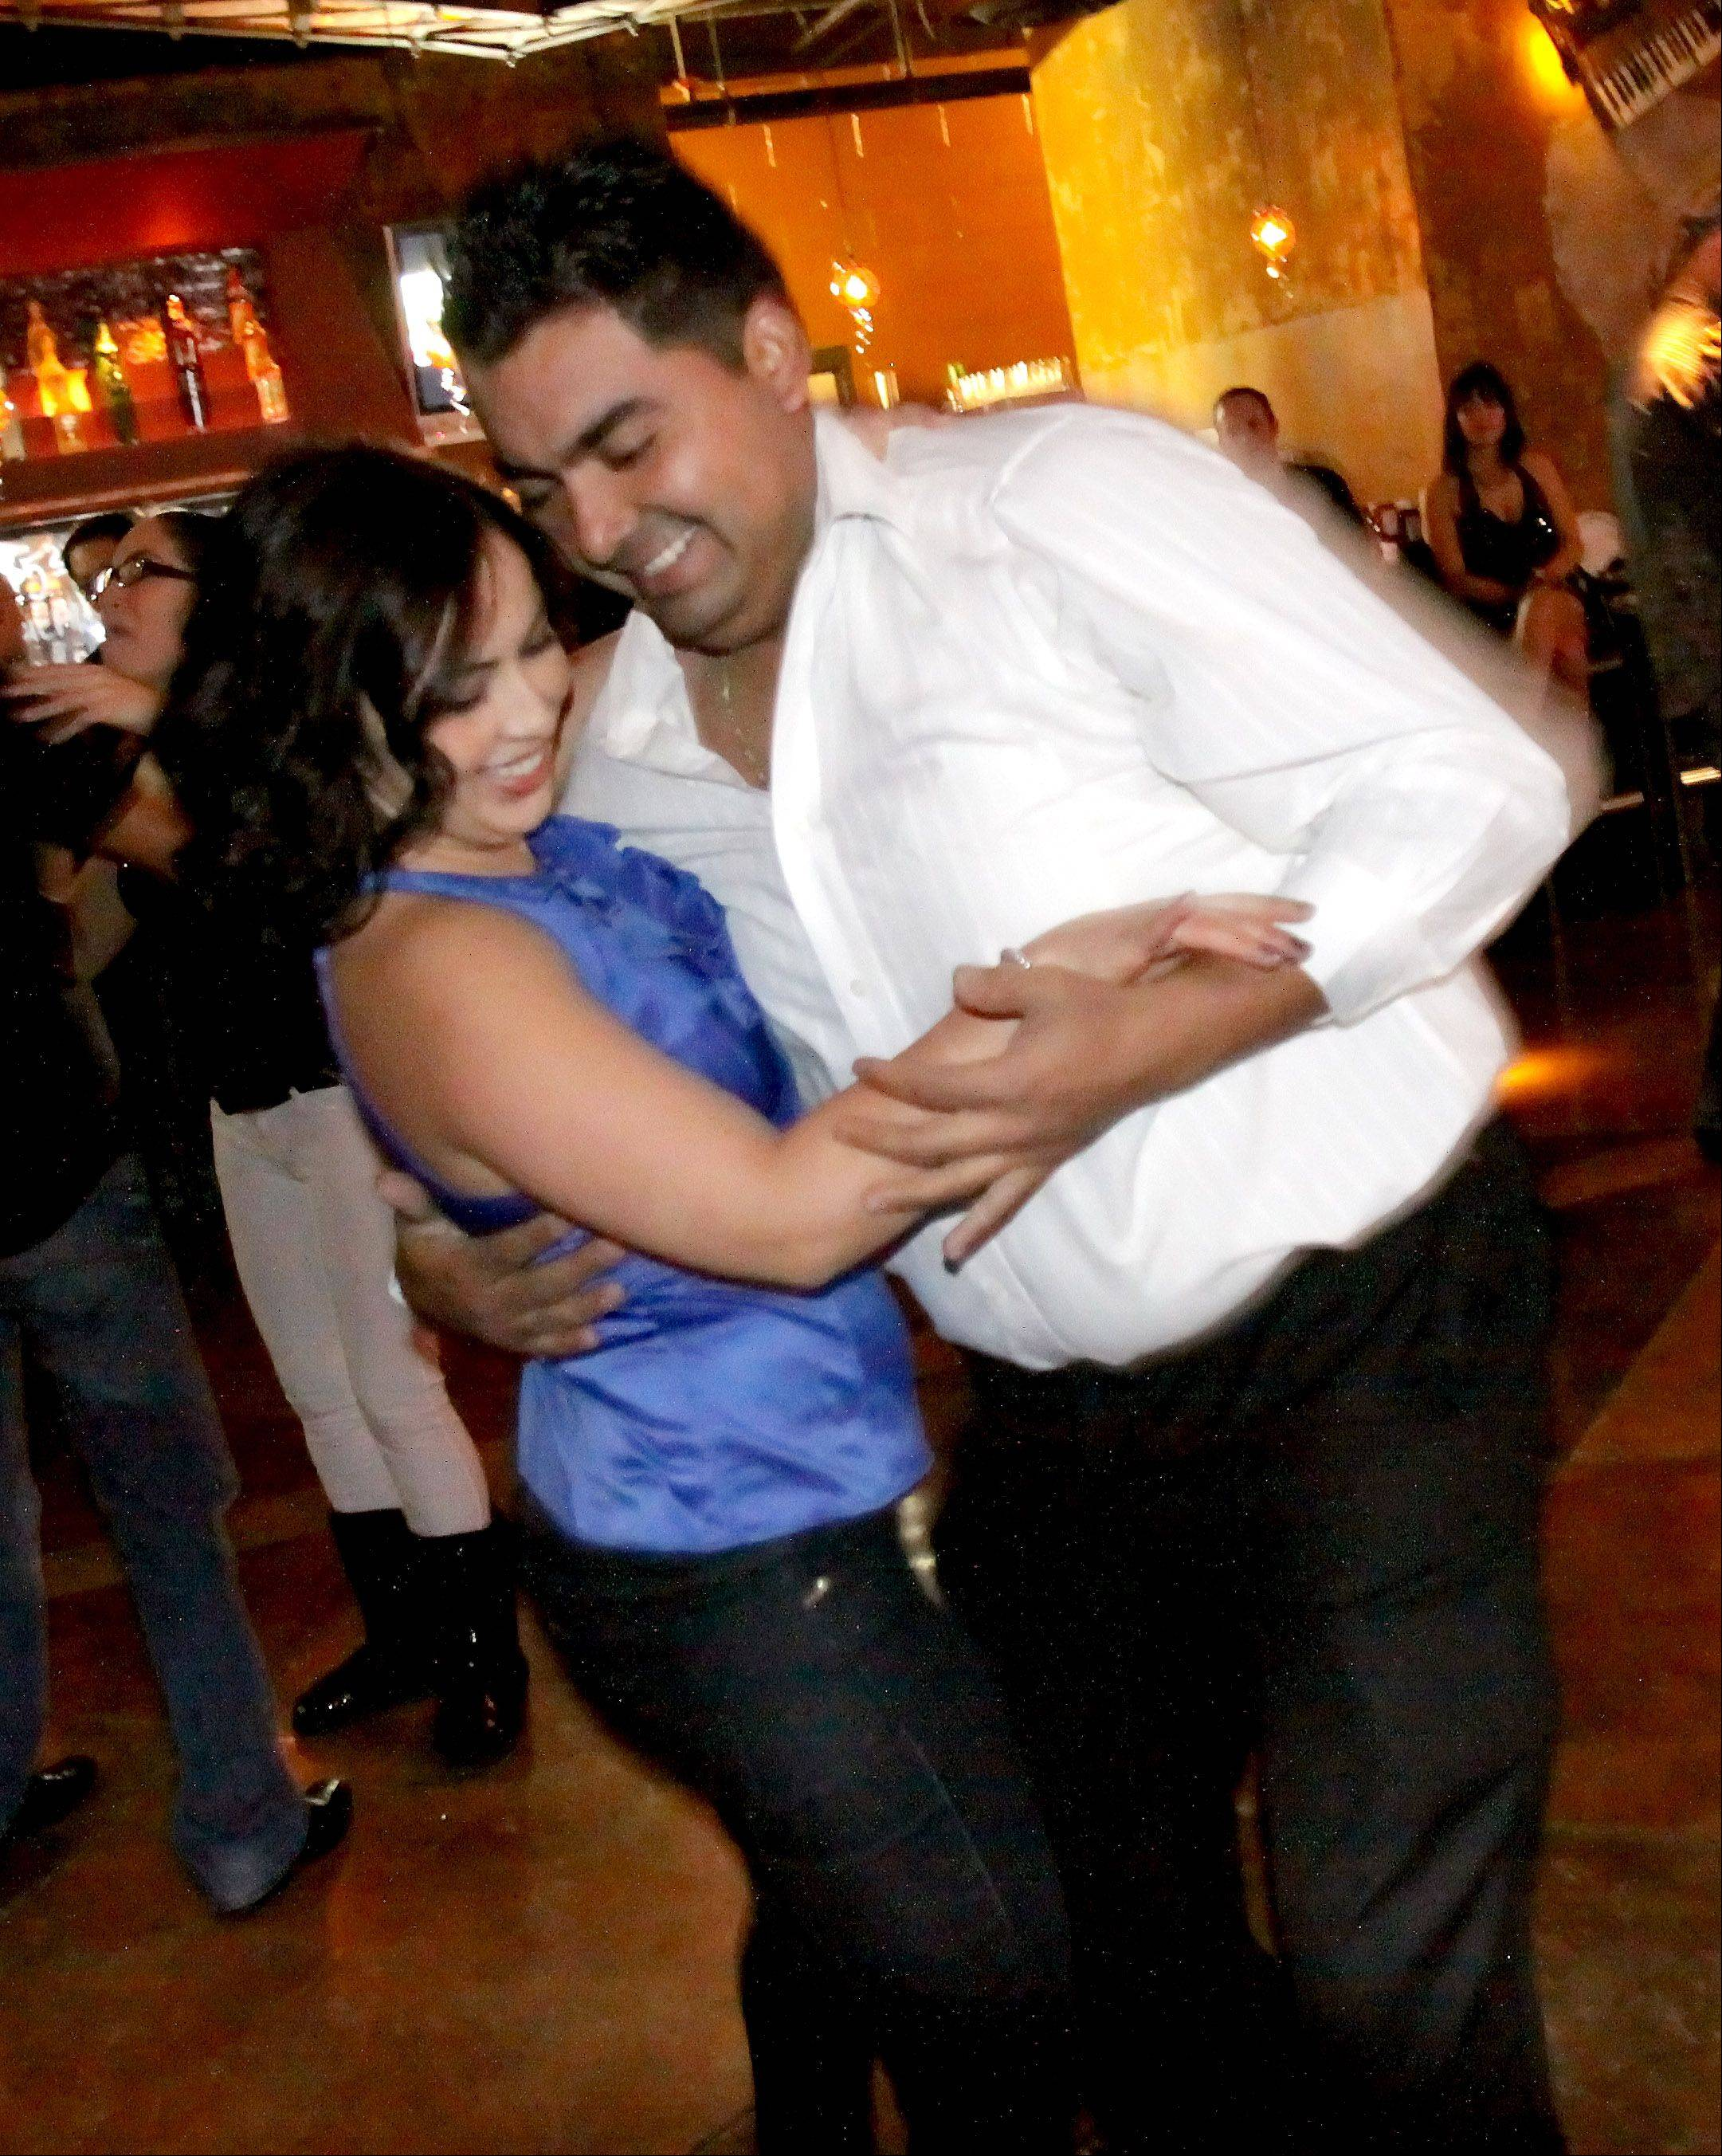 Salsa dancing finds its footing in the suburbs